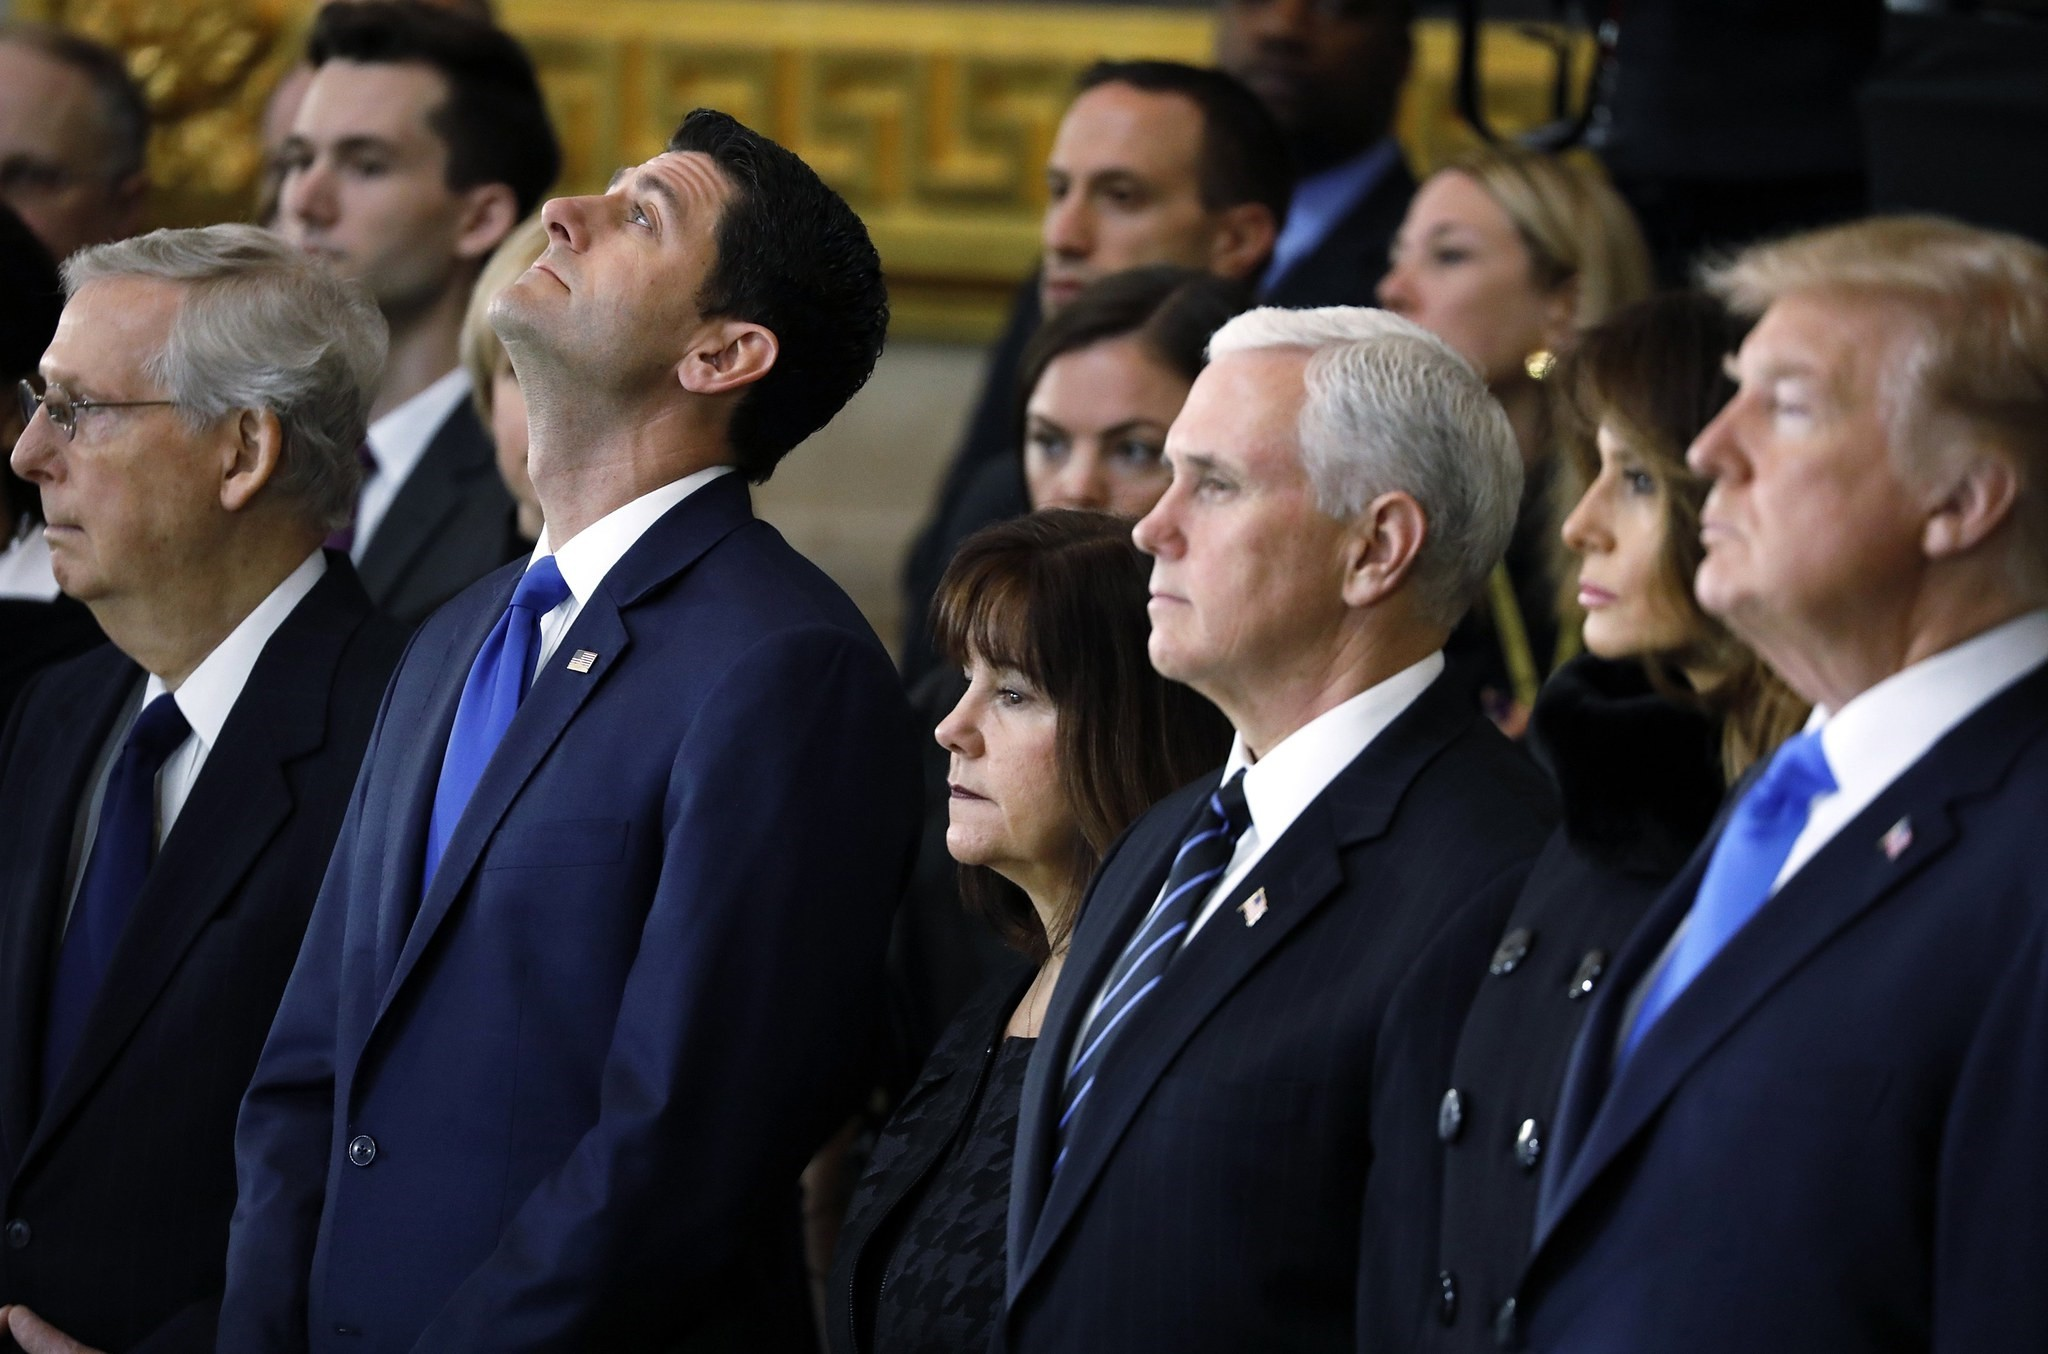 (L-R) US Senate Majority Leader Mitch McConnell, US Speaker of the House Paul Ryan, US second lady Karen Pence, U.S. Vice President Mike Pence, US First Lady Melania Trump and President Donald J. Trump. (EPA Photo)